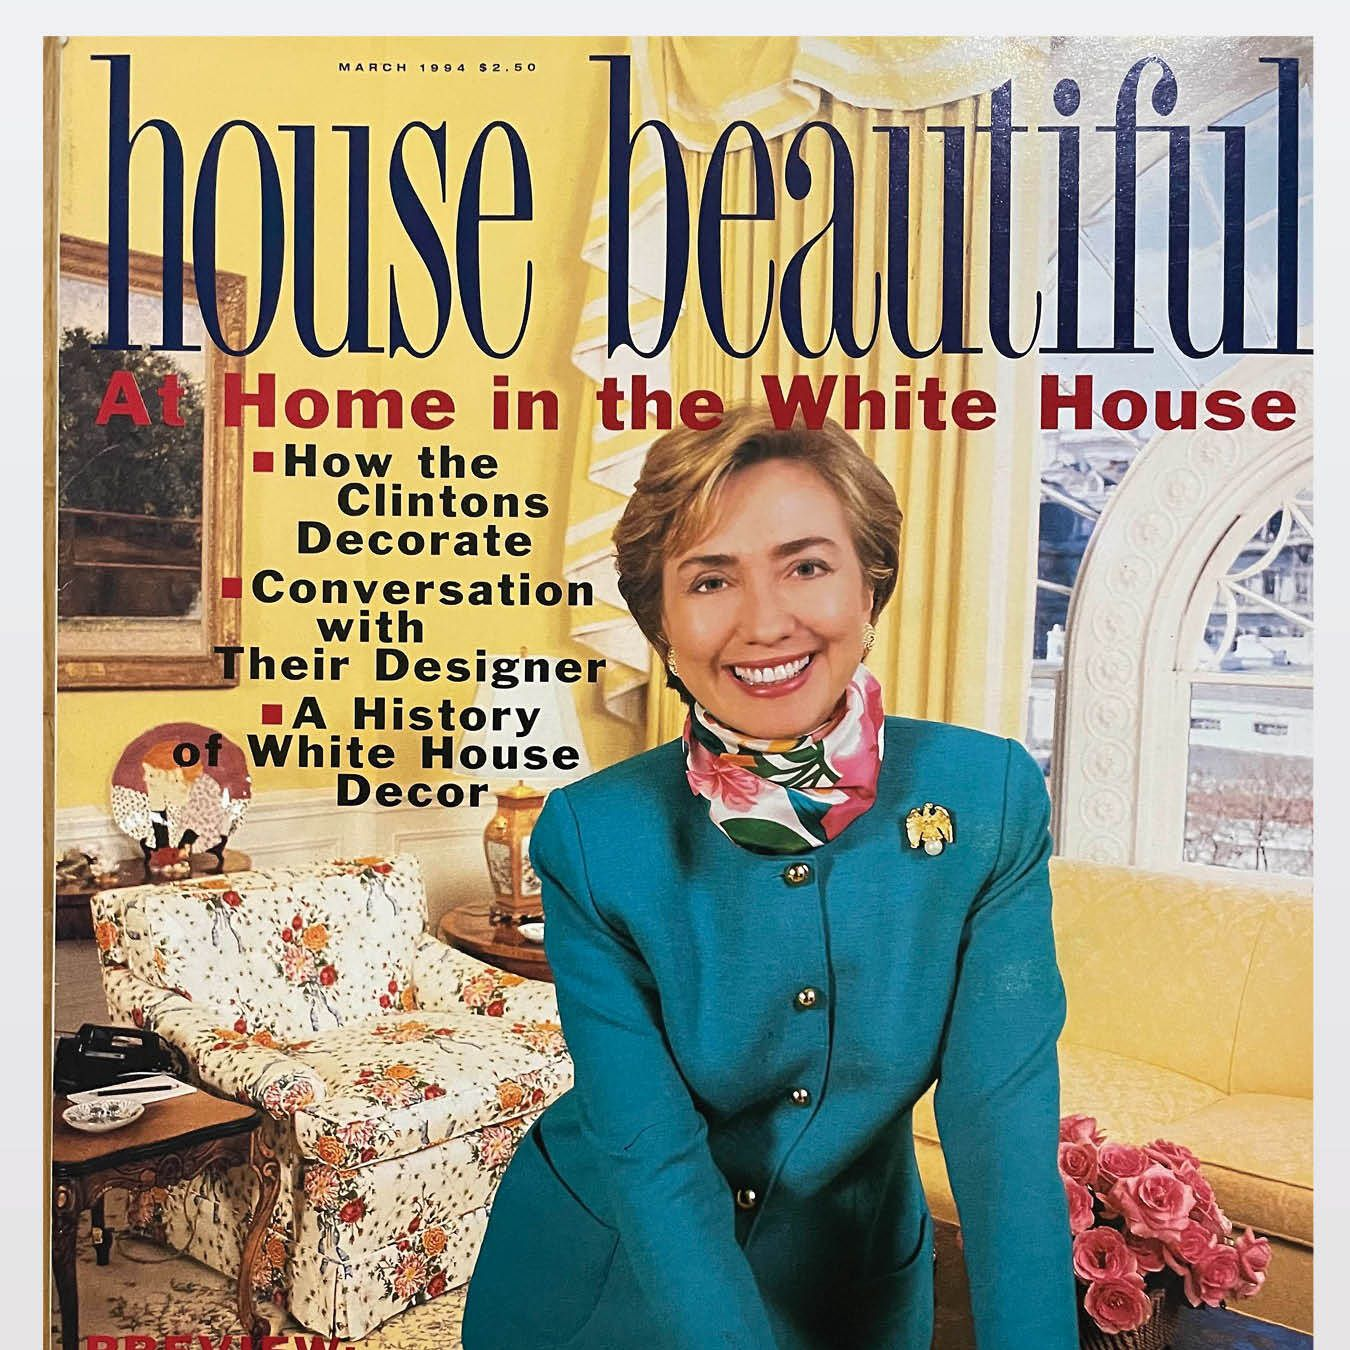 From the Archive: Inside the Clinton White House, Circa 1994